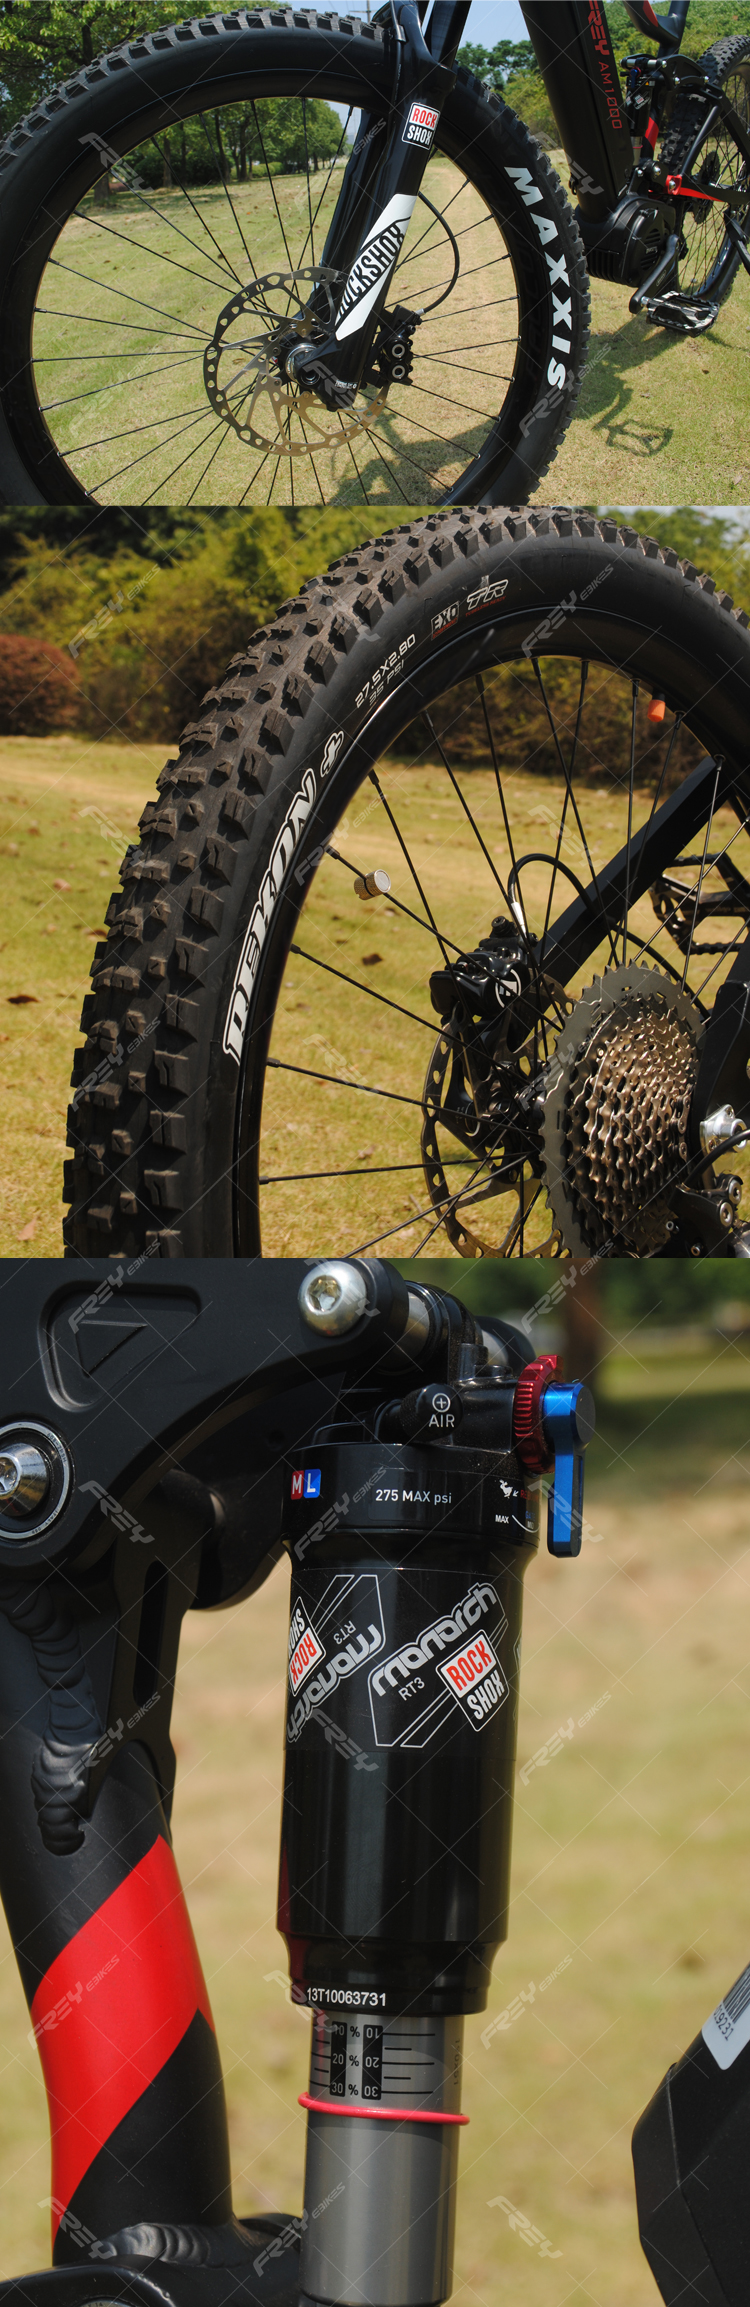 Top end Bafang Mid Drive Bafang 1000W electric mountain bike AM1000 full suspension eMTB mountain ebike Enduro ebike